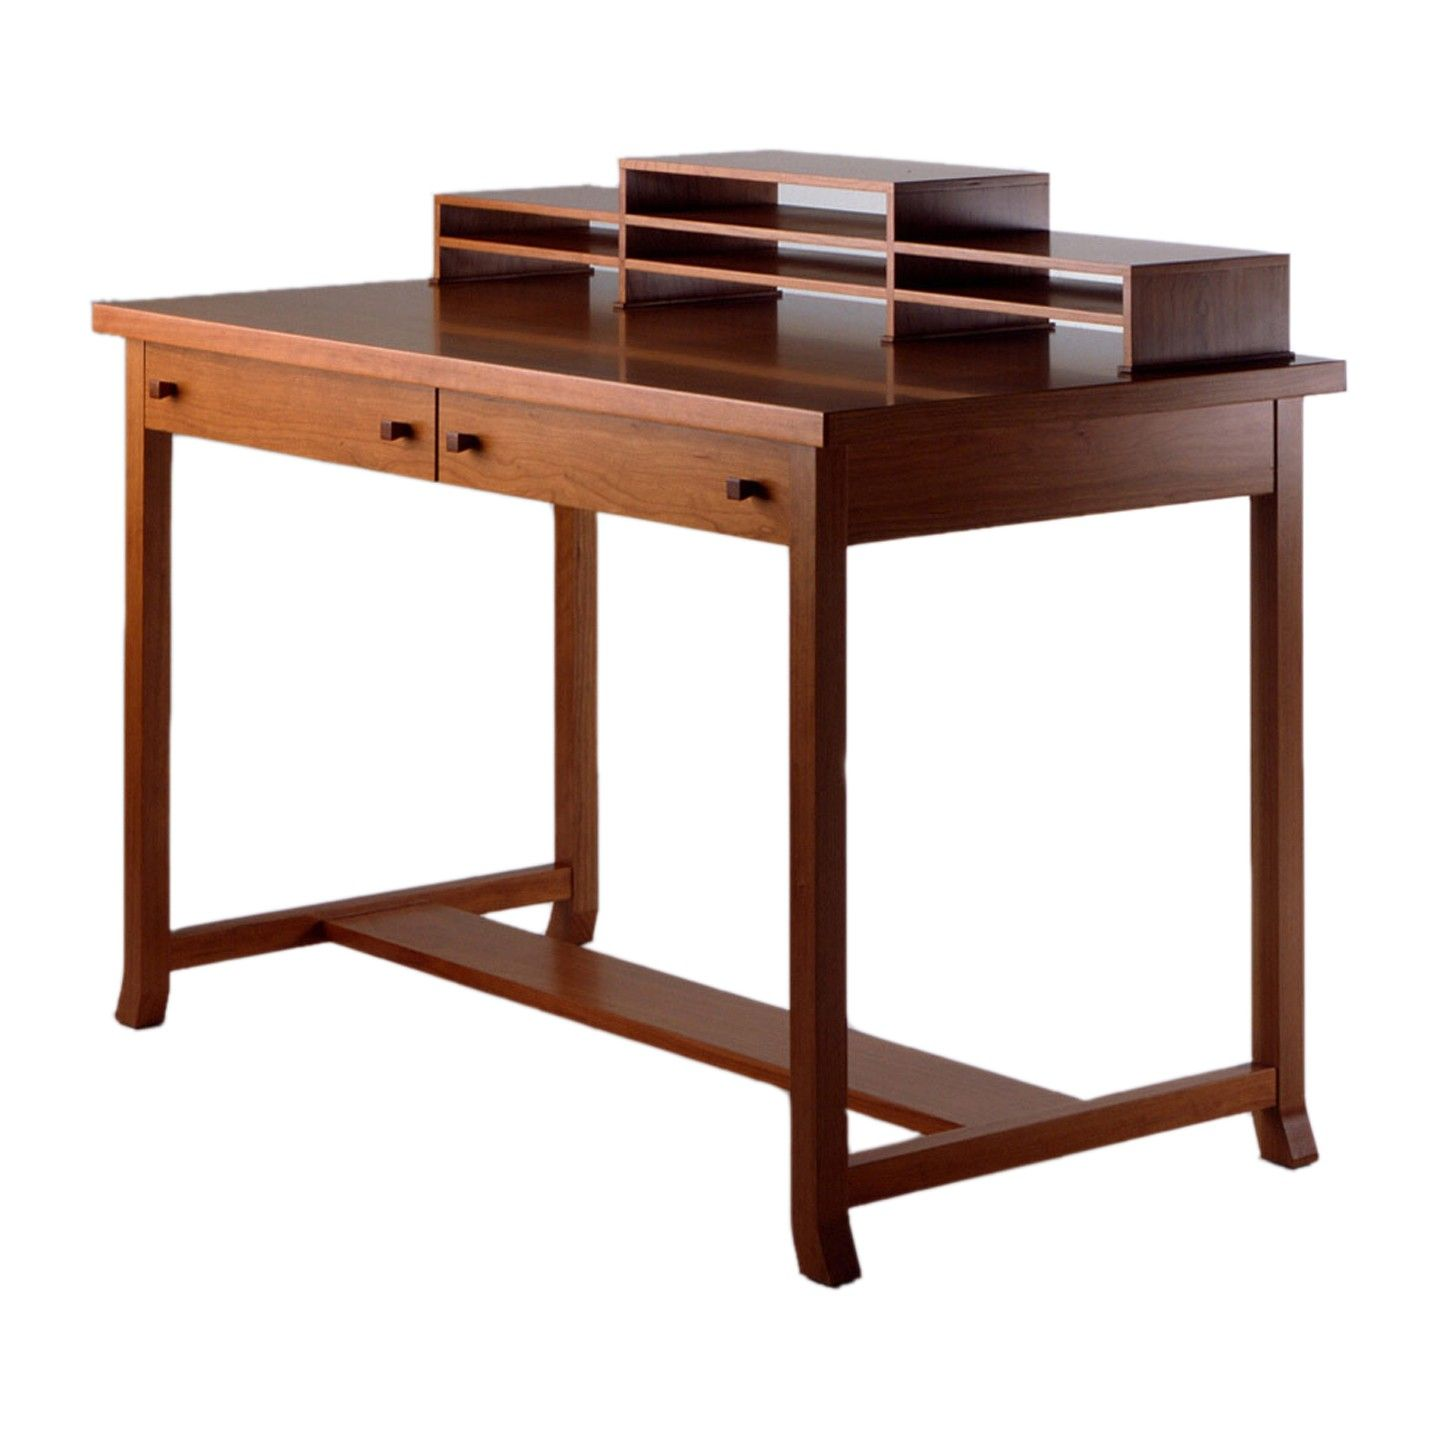 Meyer May desk by Frank Lloyd Wright for Cassina